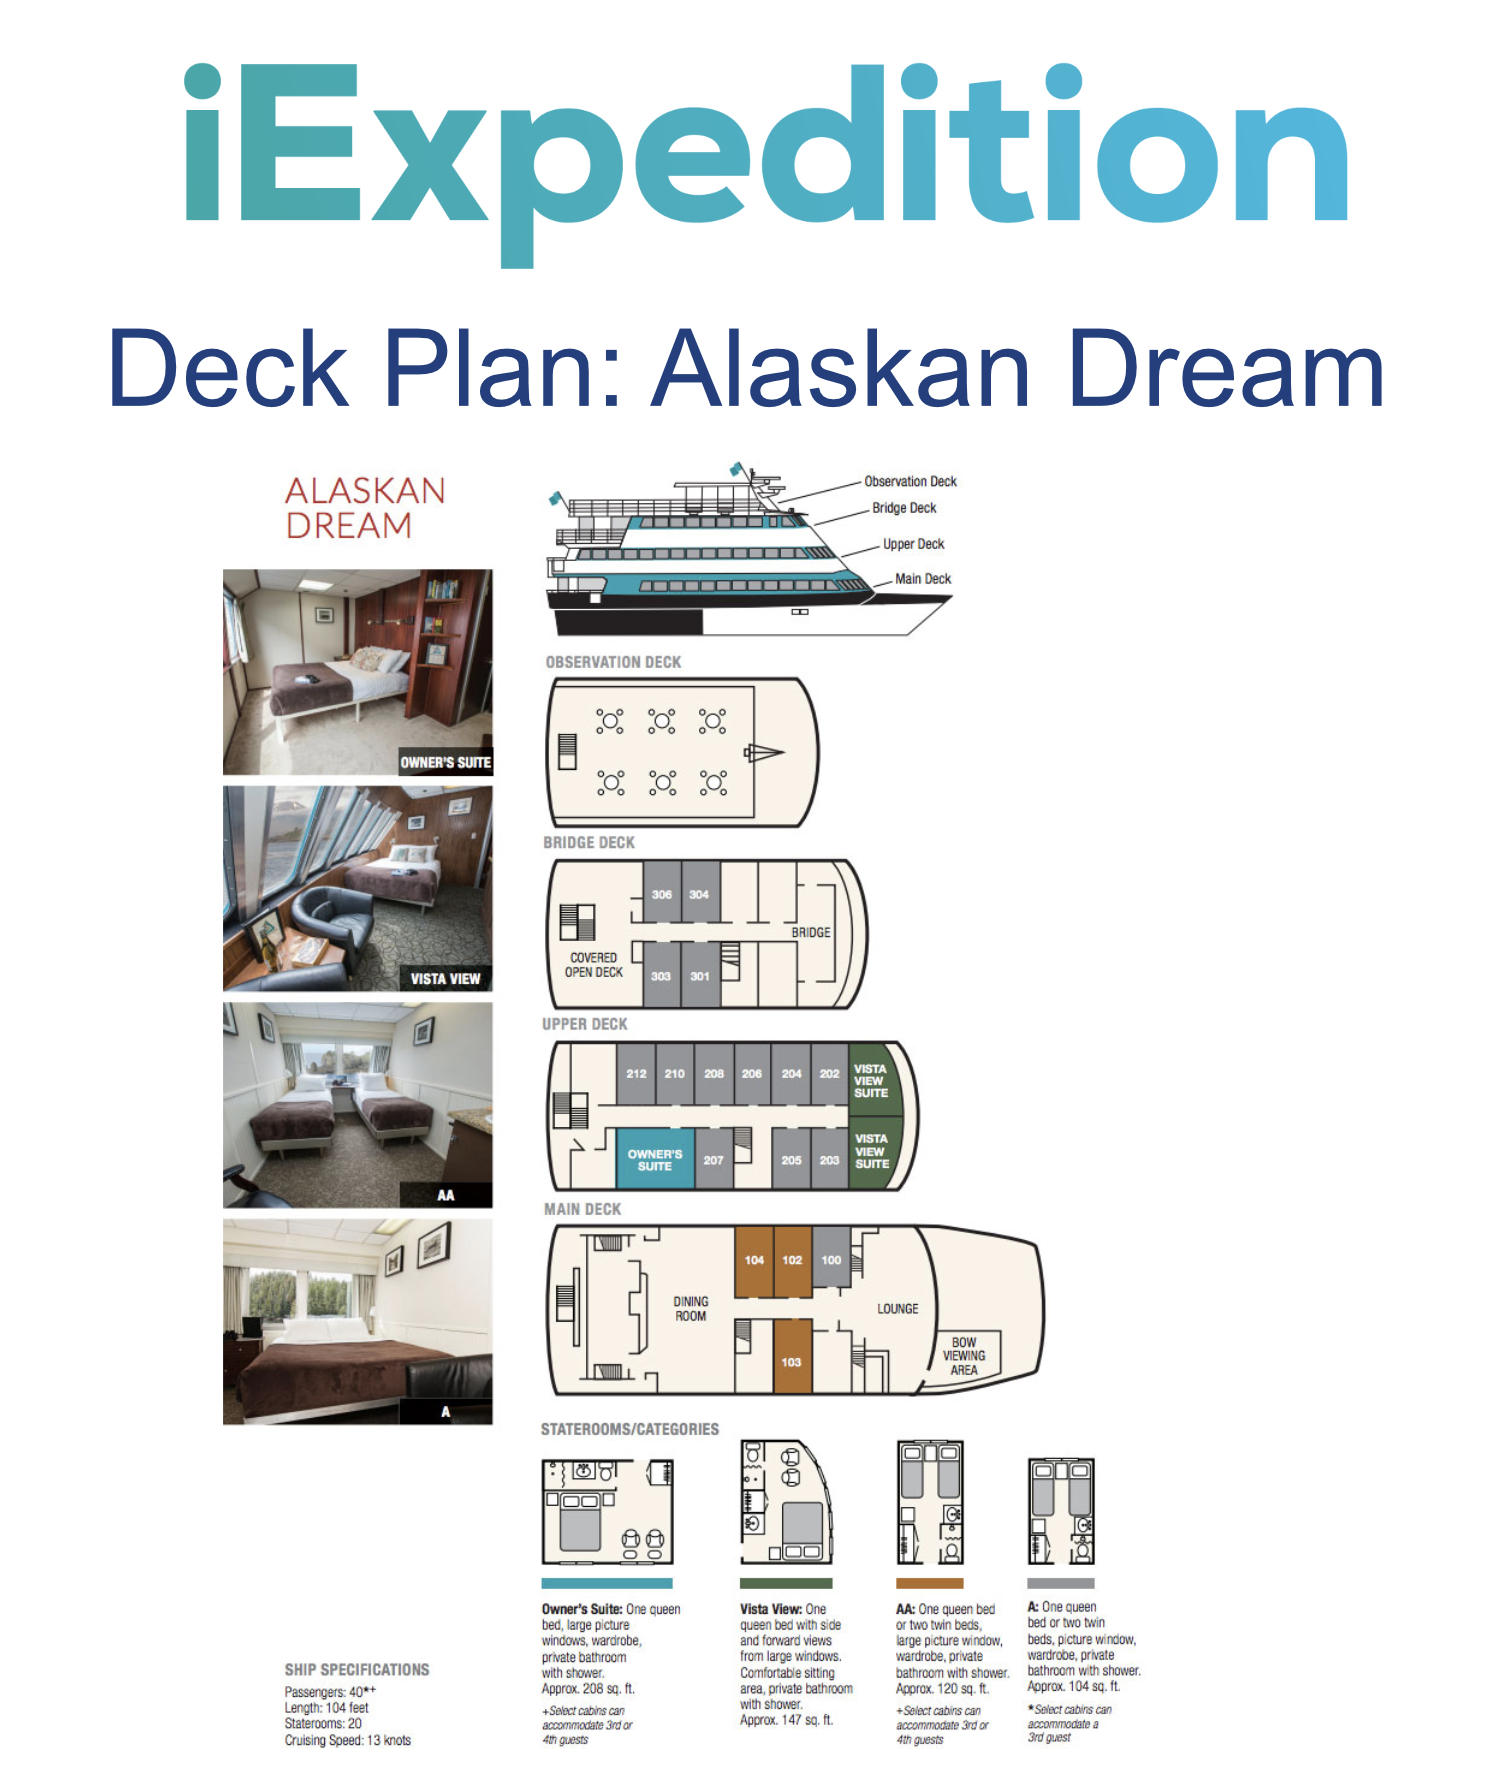 Alaskan dream deck plan